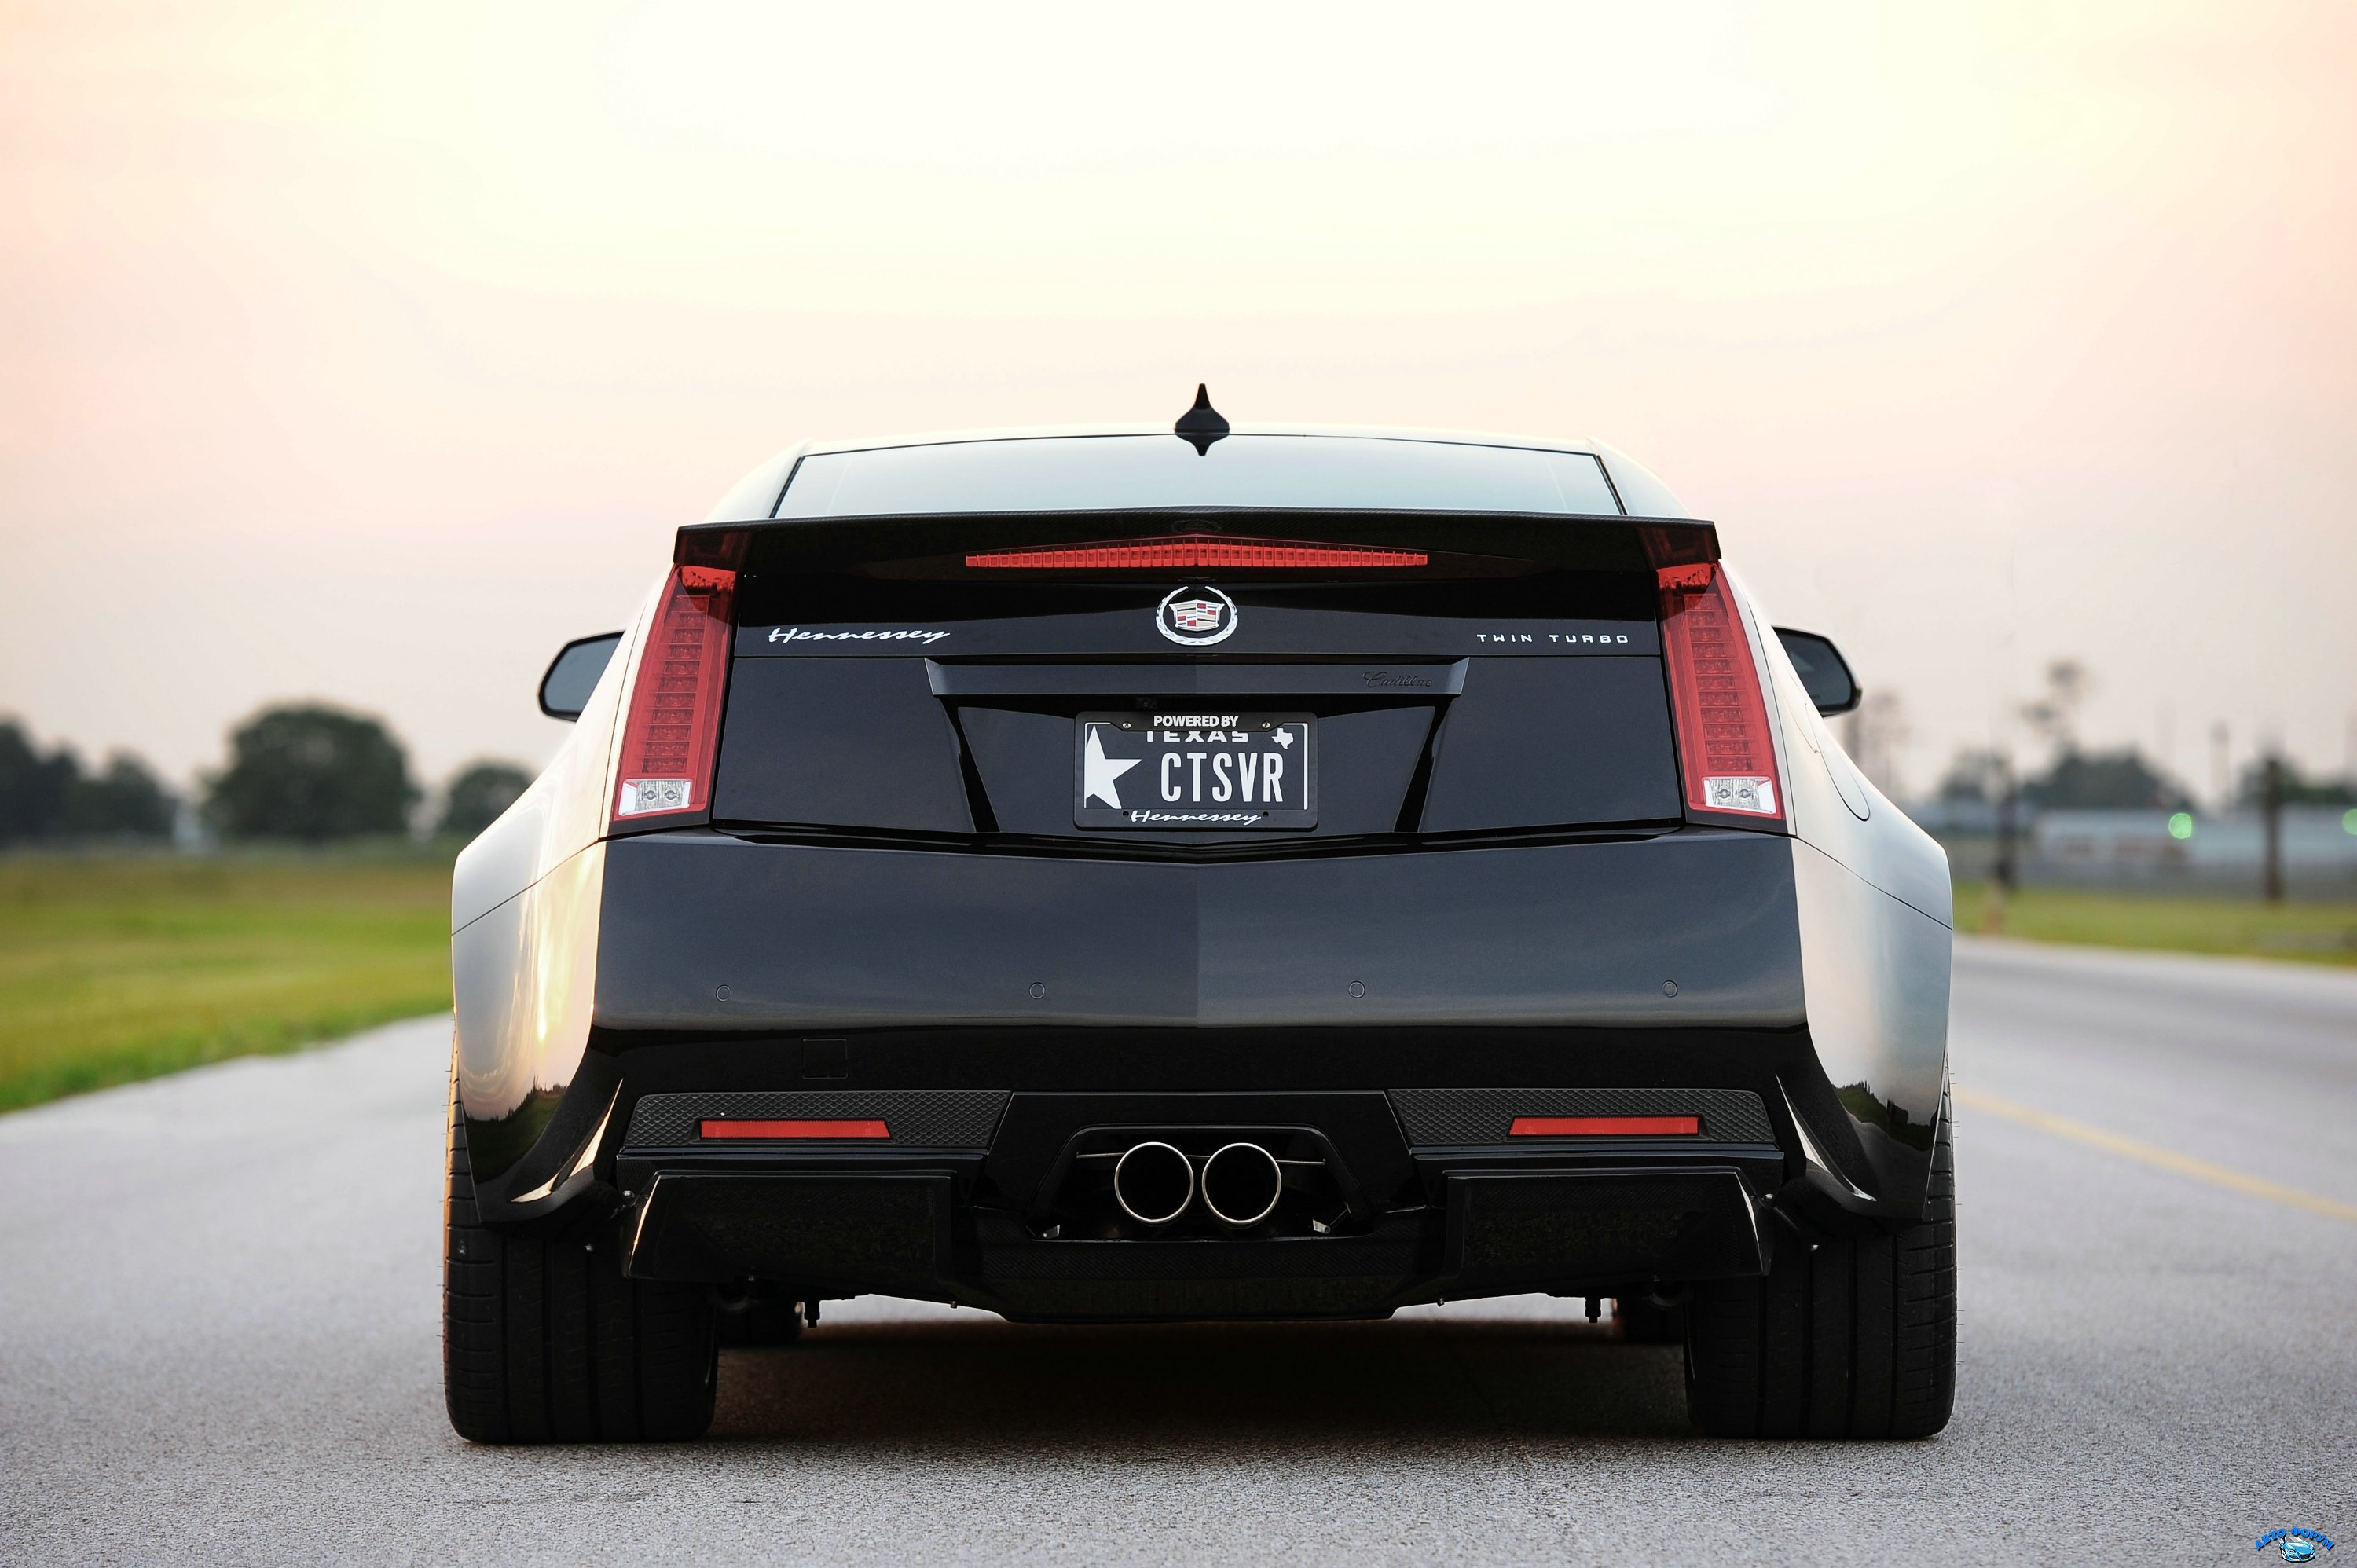 hennessey_cadillac_vr1200_twin_turbo_coupe_12.jpg